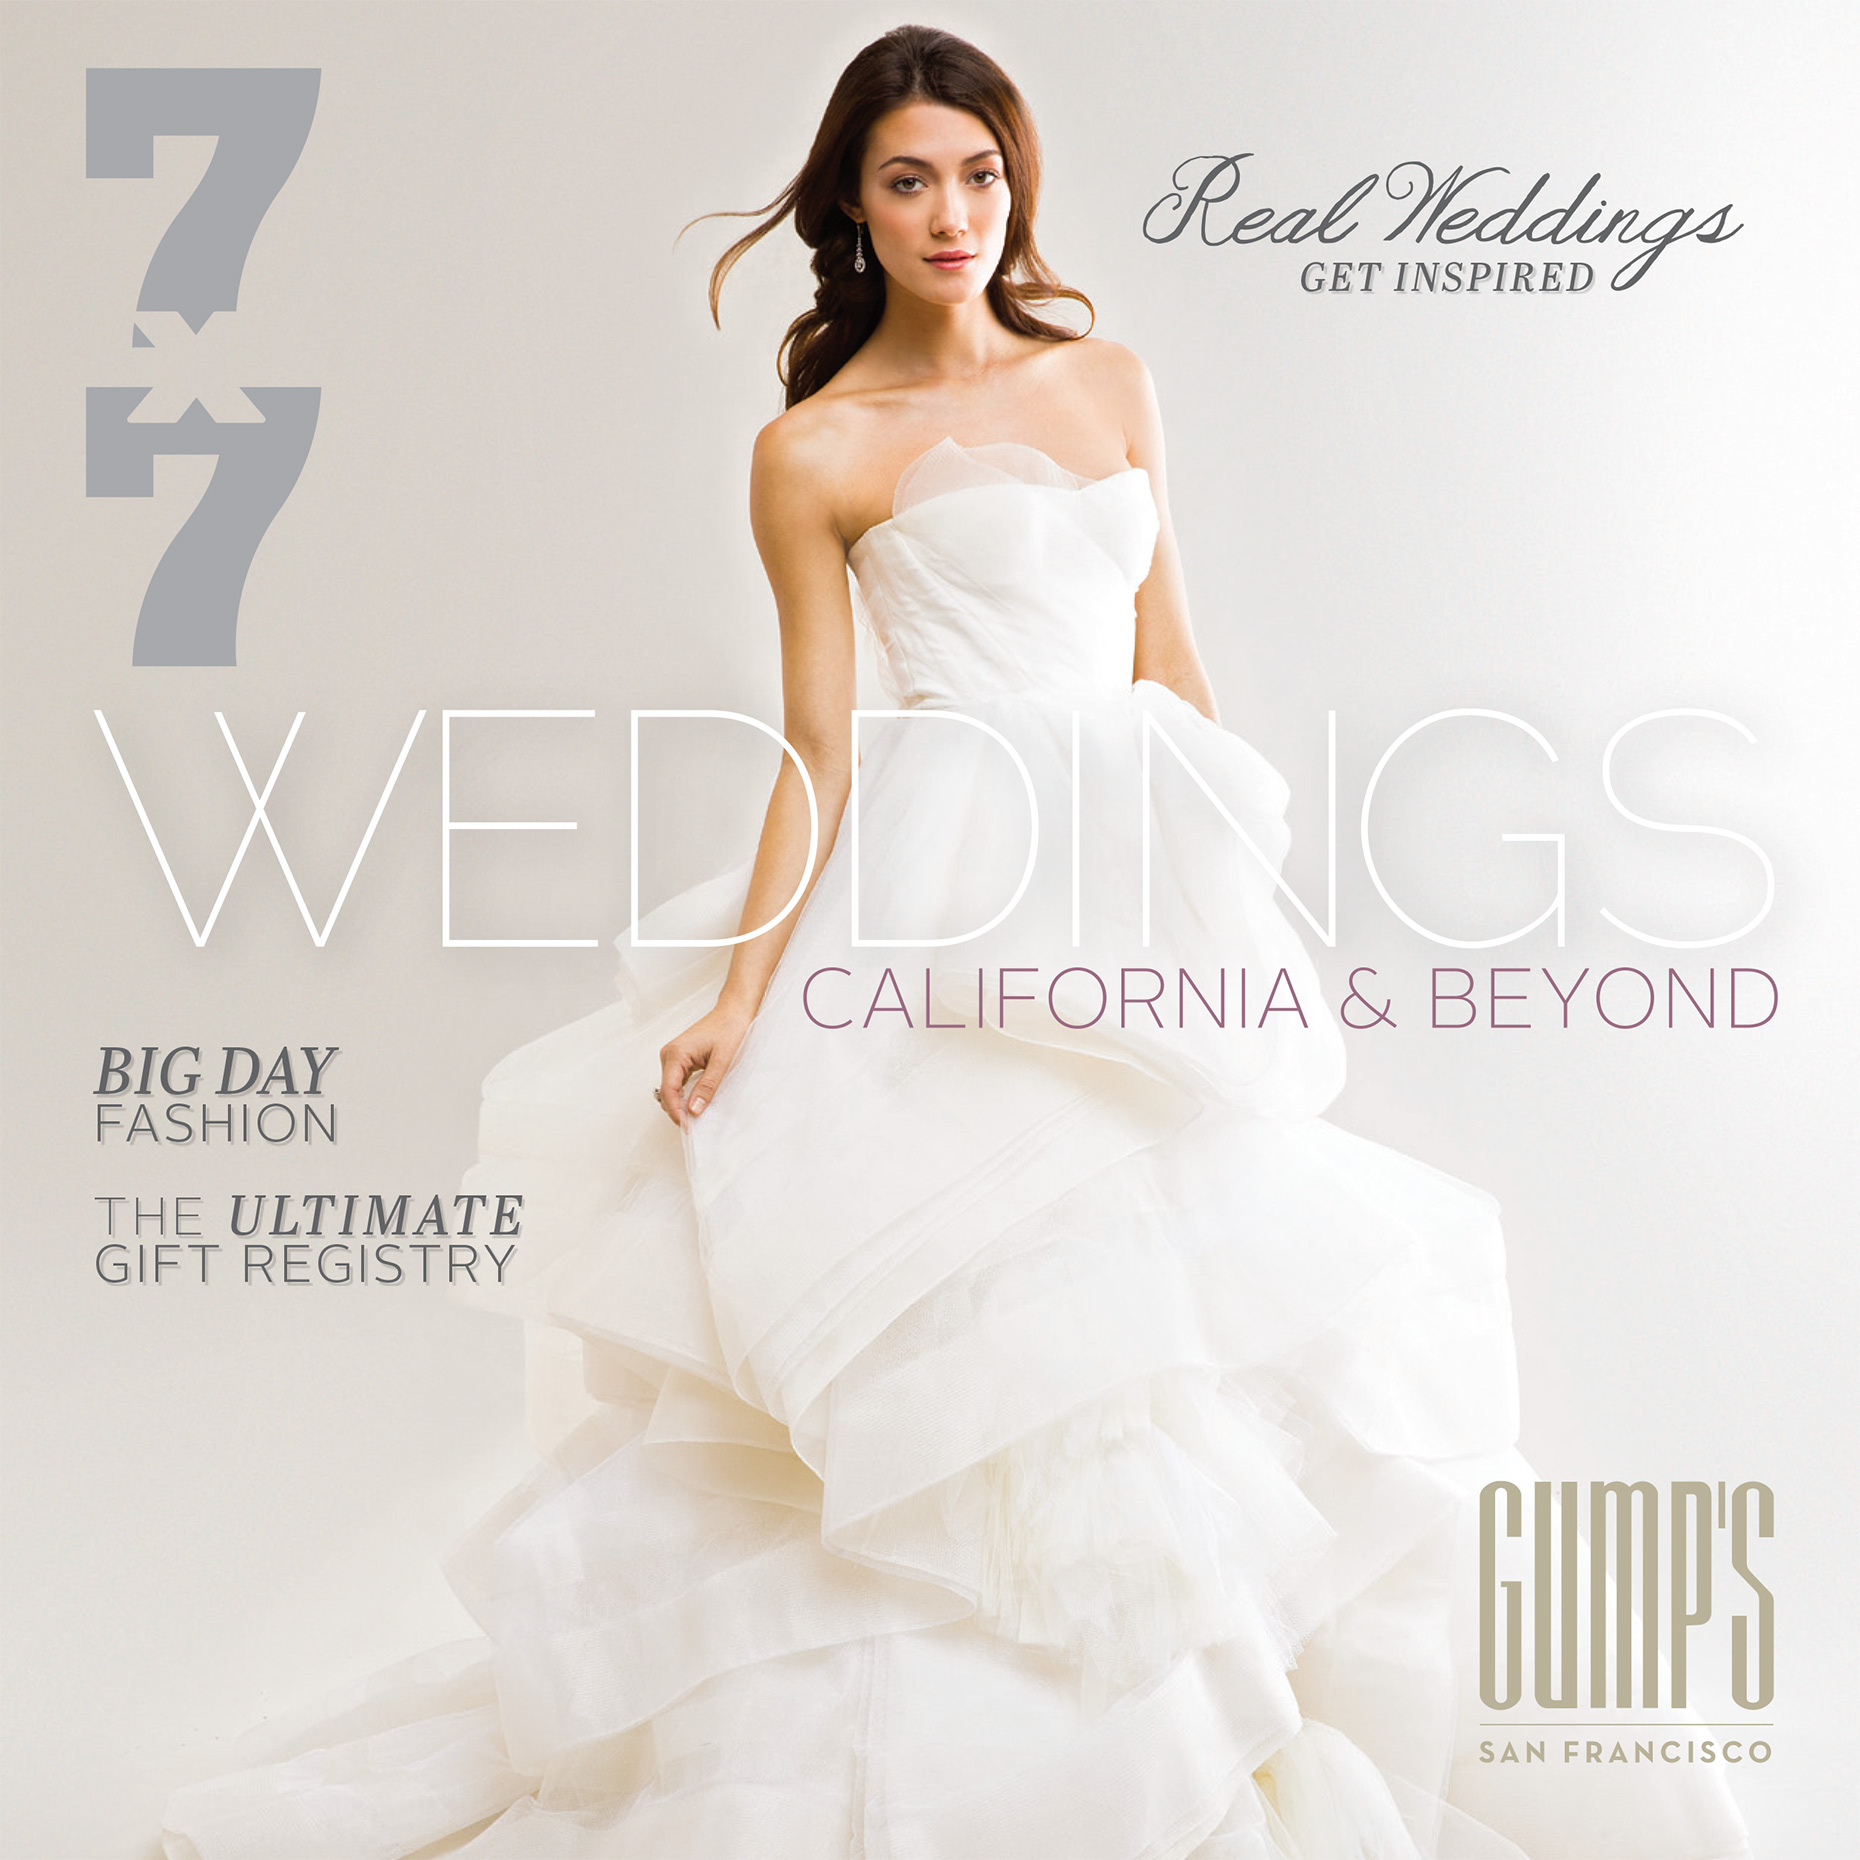 7x7-Weddings_Cover.jpg